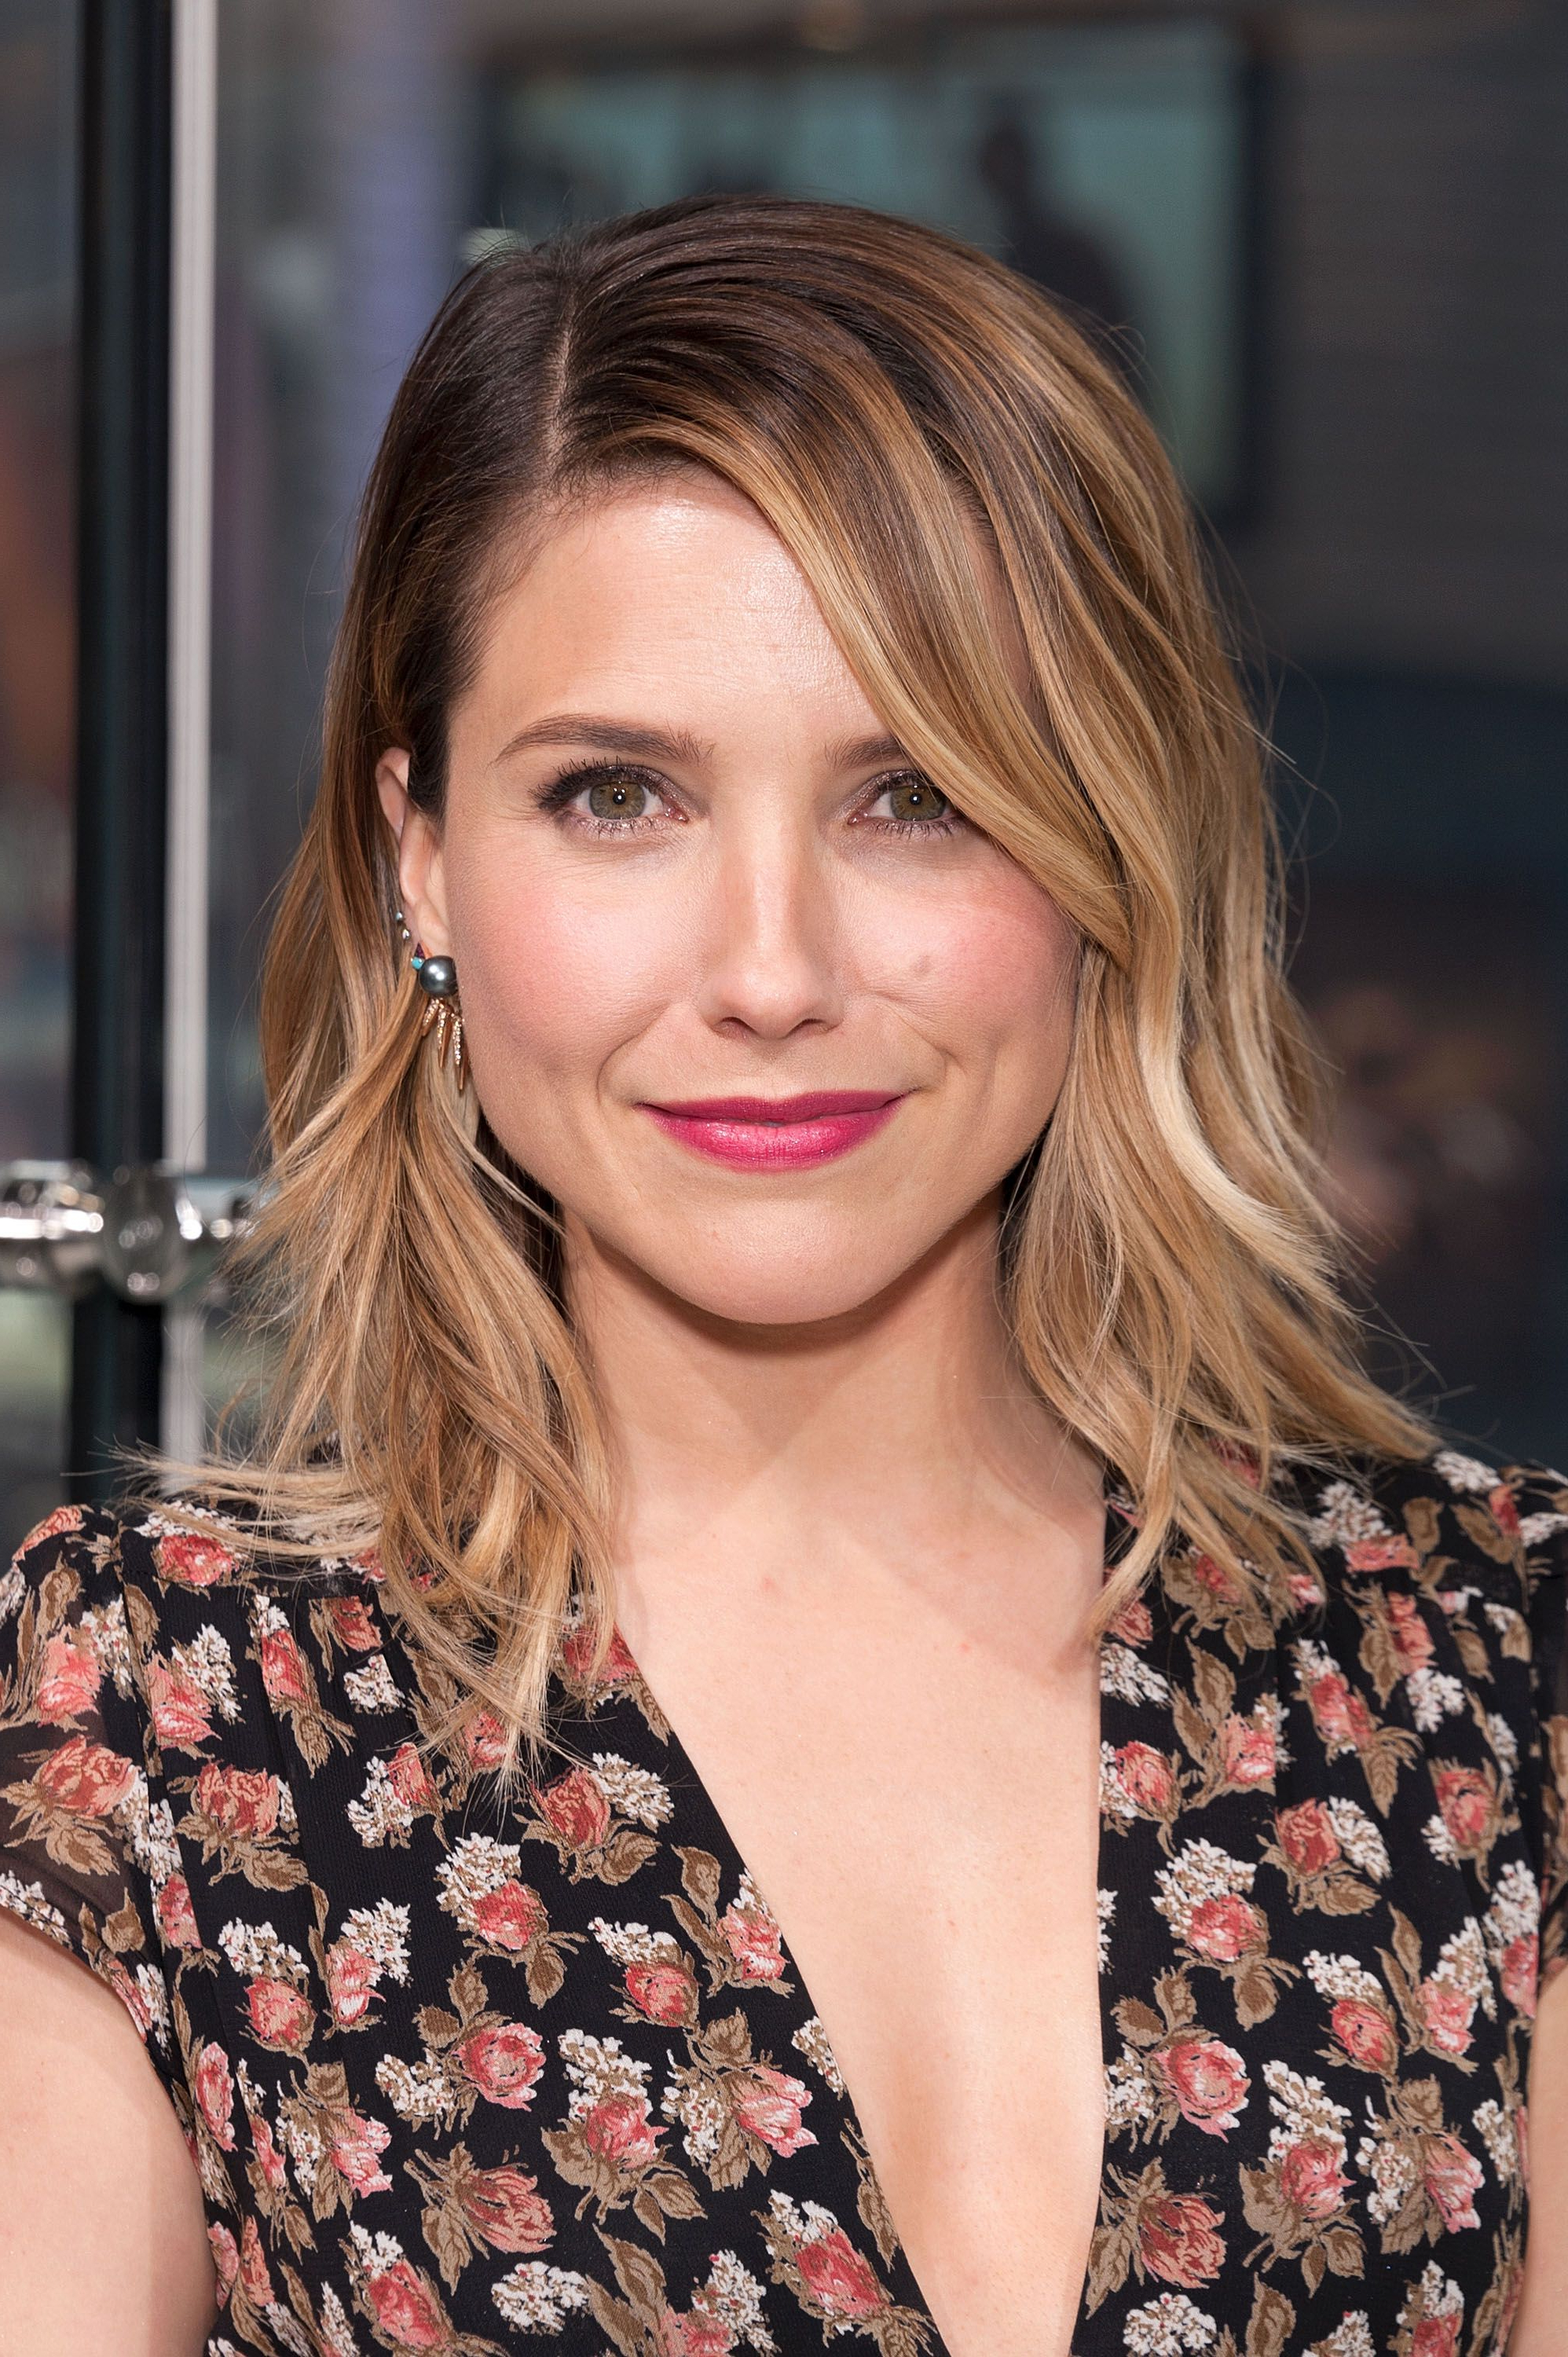 Trendy Sophia Bush Medium Hairstyles For Sophia Bush Shares Some Of Her Eco Beauty Favorites For Earth Month (View 19 of 20)